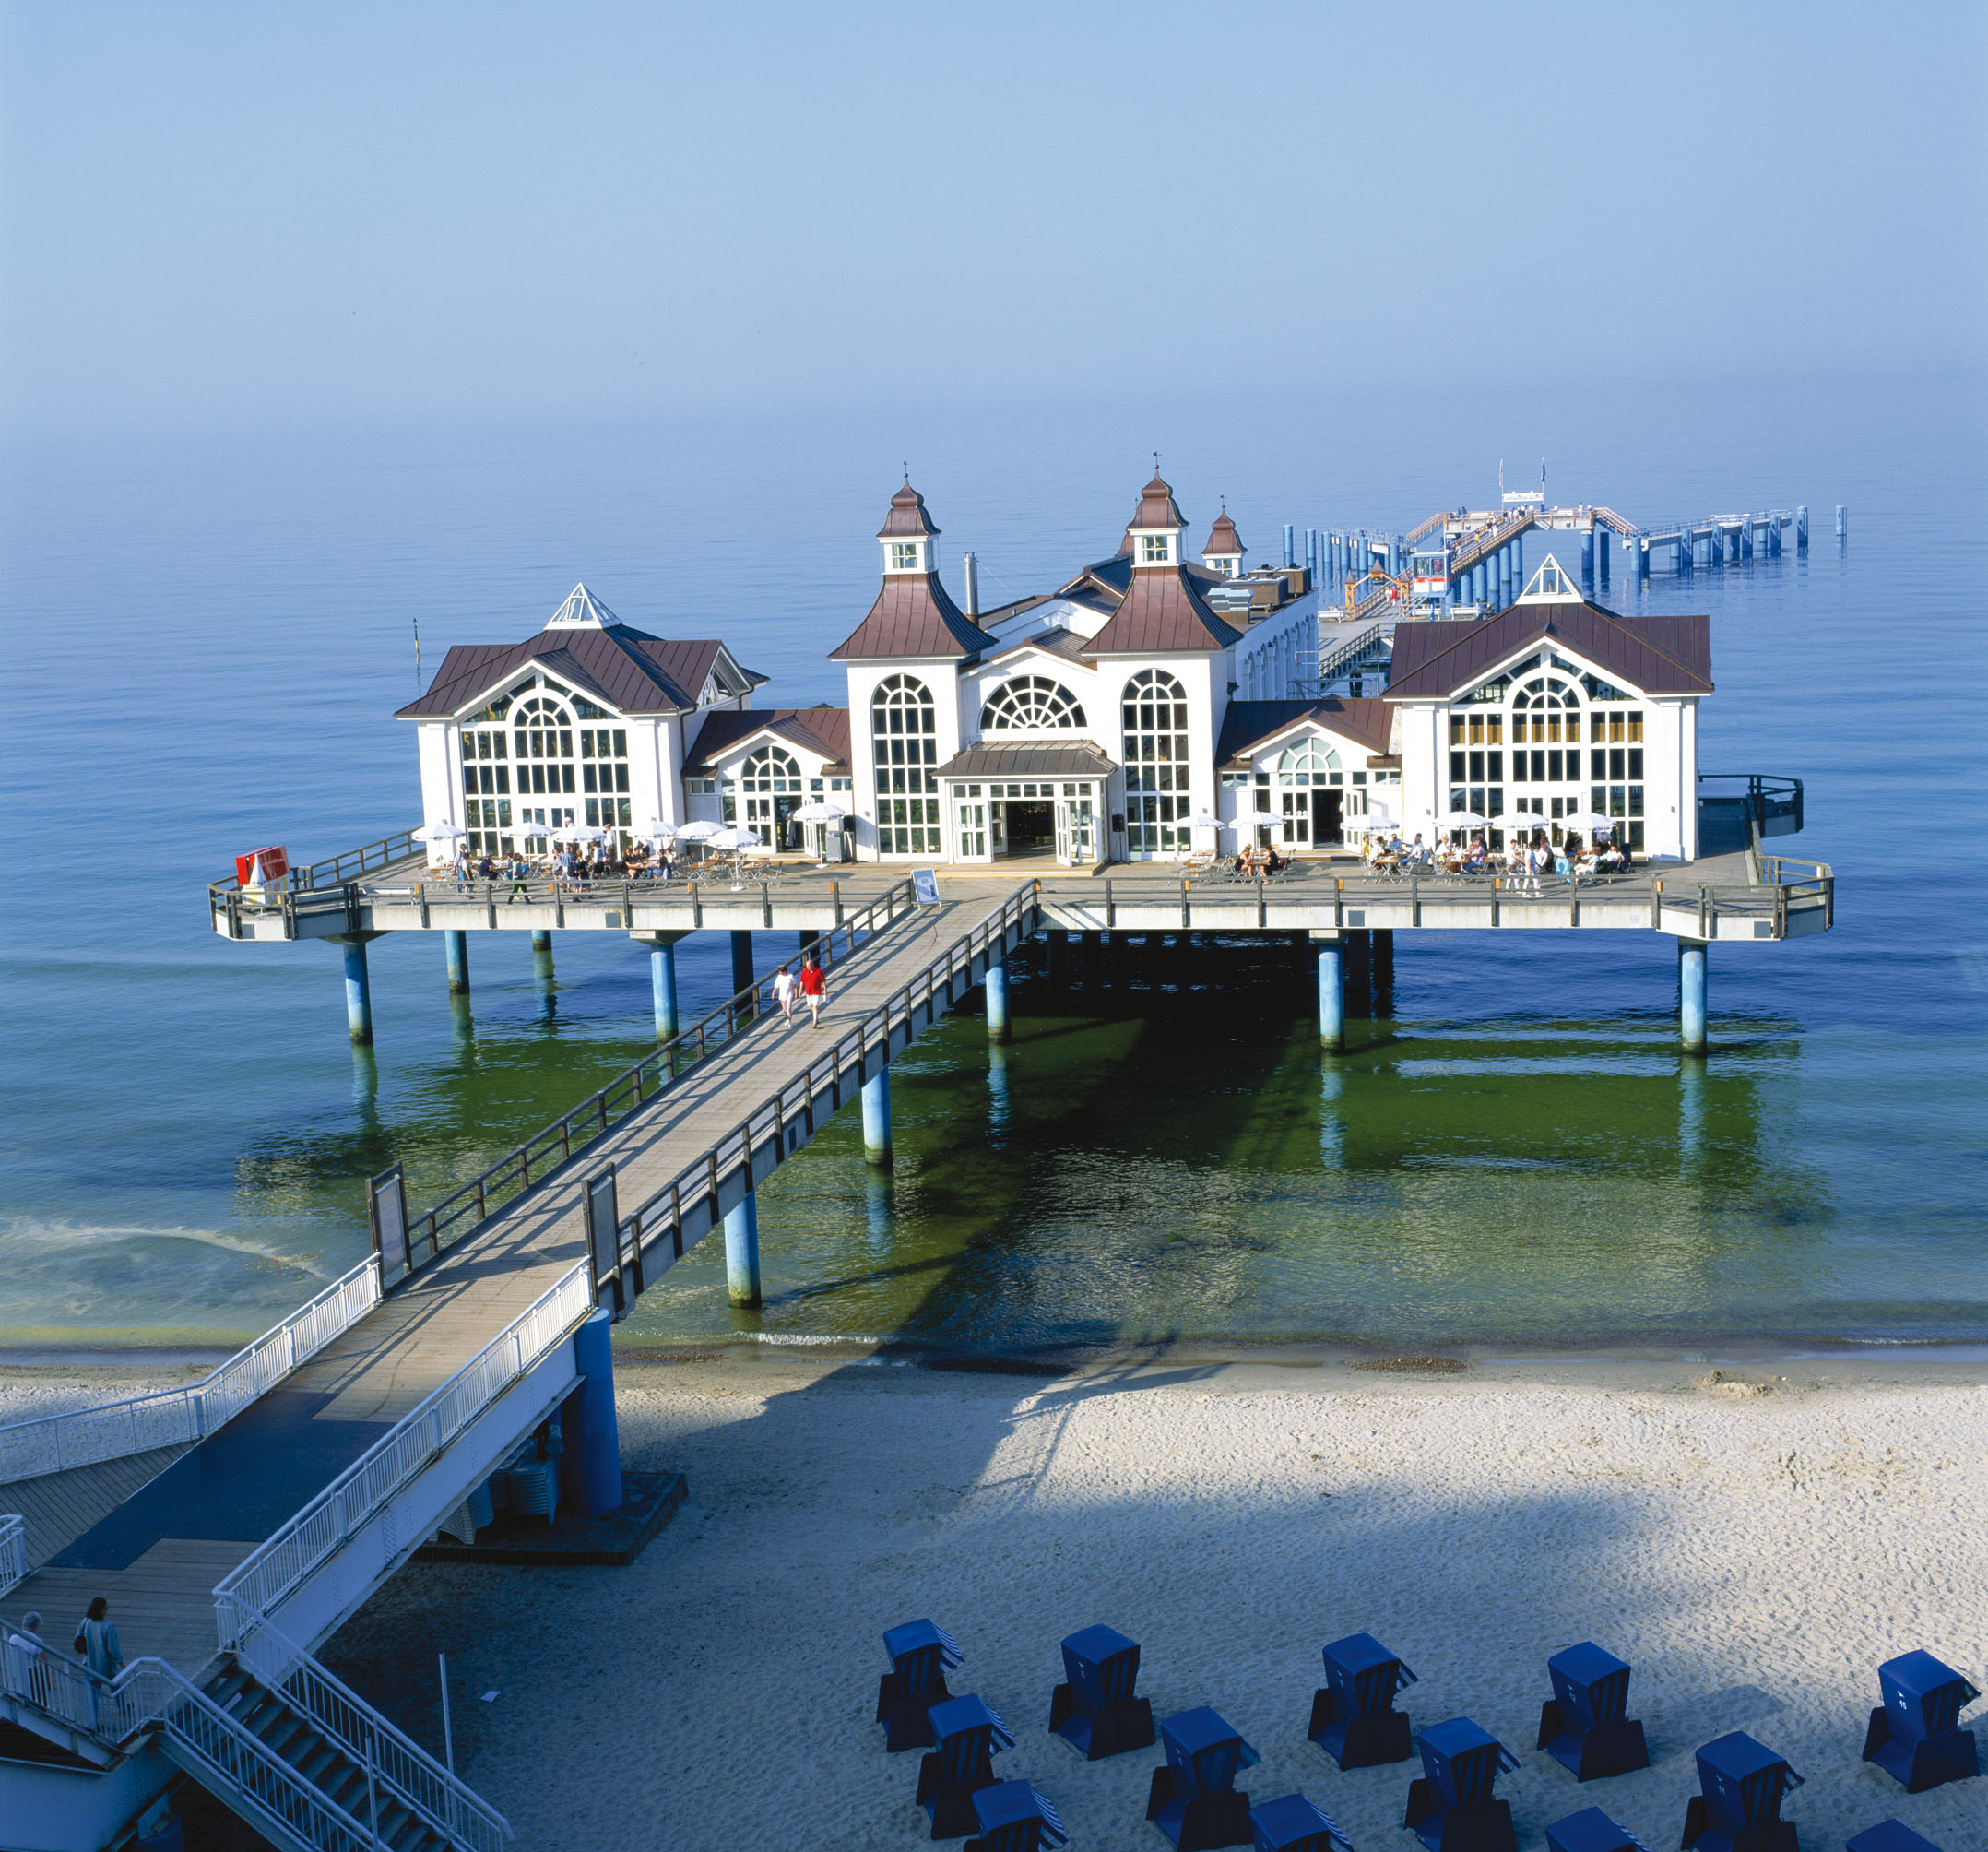 http://www.travelsys.sk/public/users/paxtour/images/fotogaleria_hotel/l_ostrovrujana02.jpg